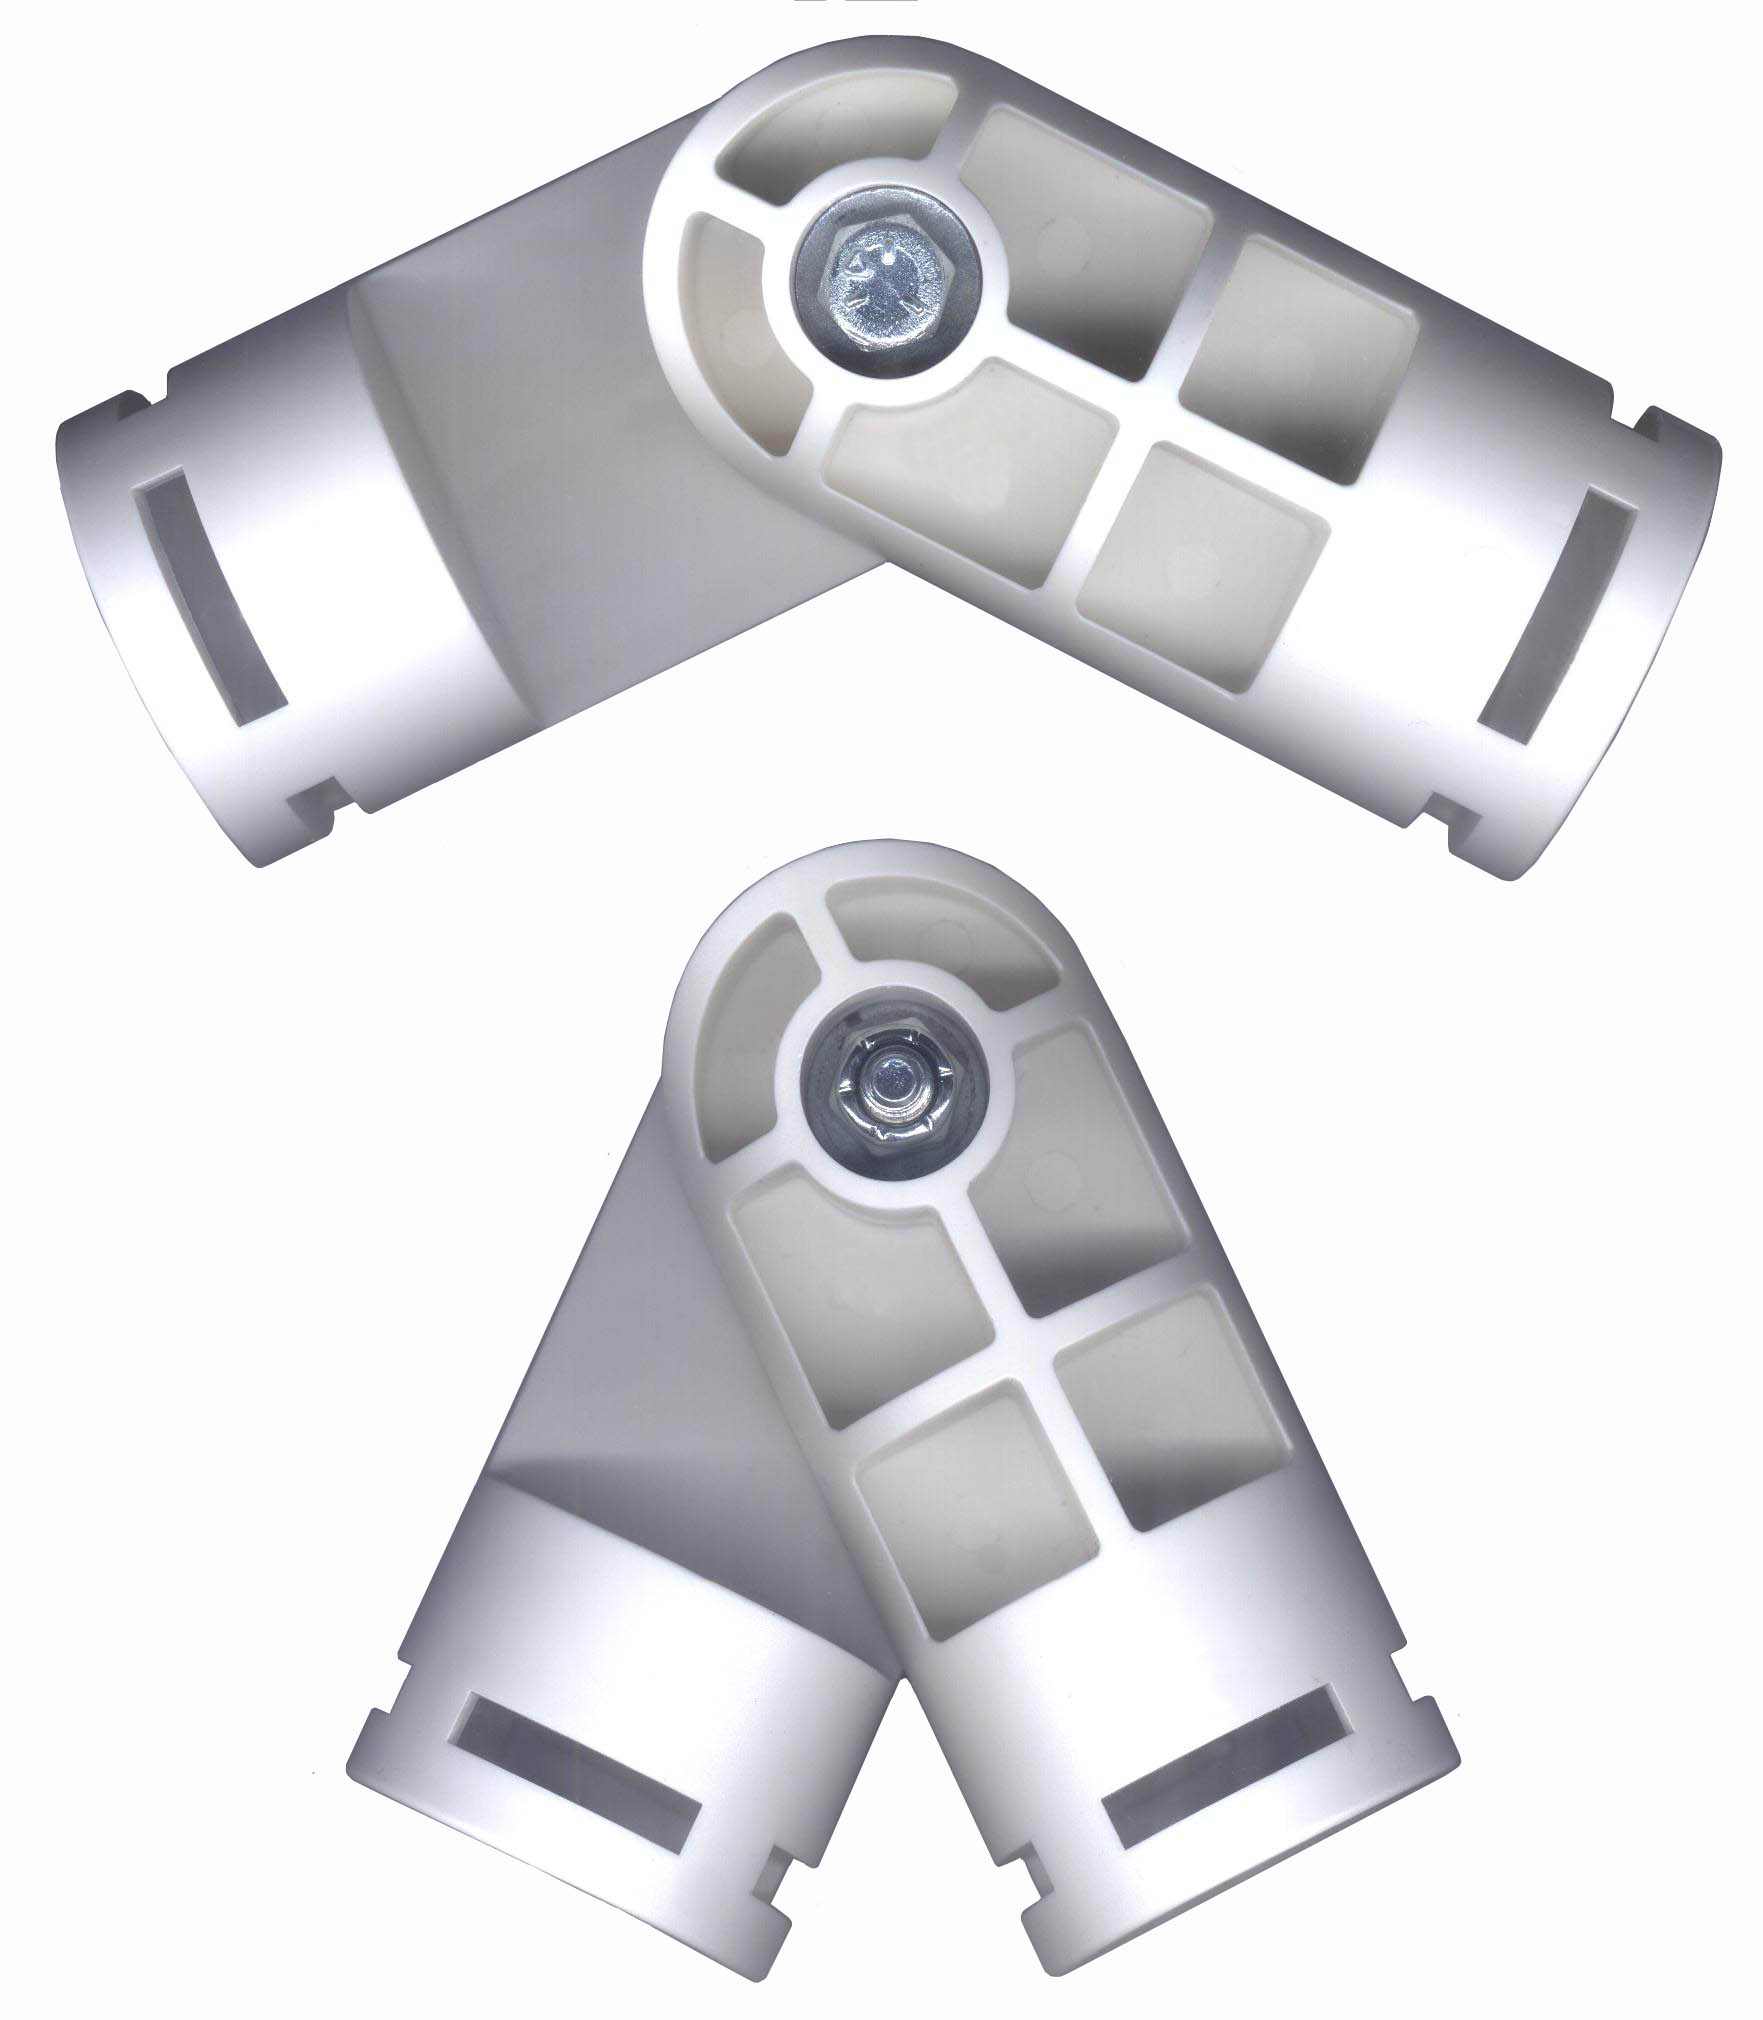 Pvc Joints Adjustable 2 Way Joint Fitting For 1 Quot Pvc 243 F